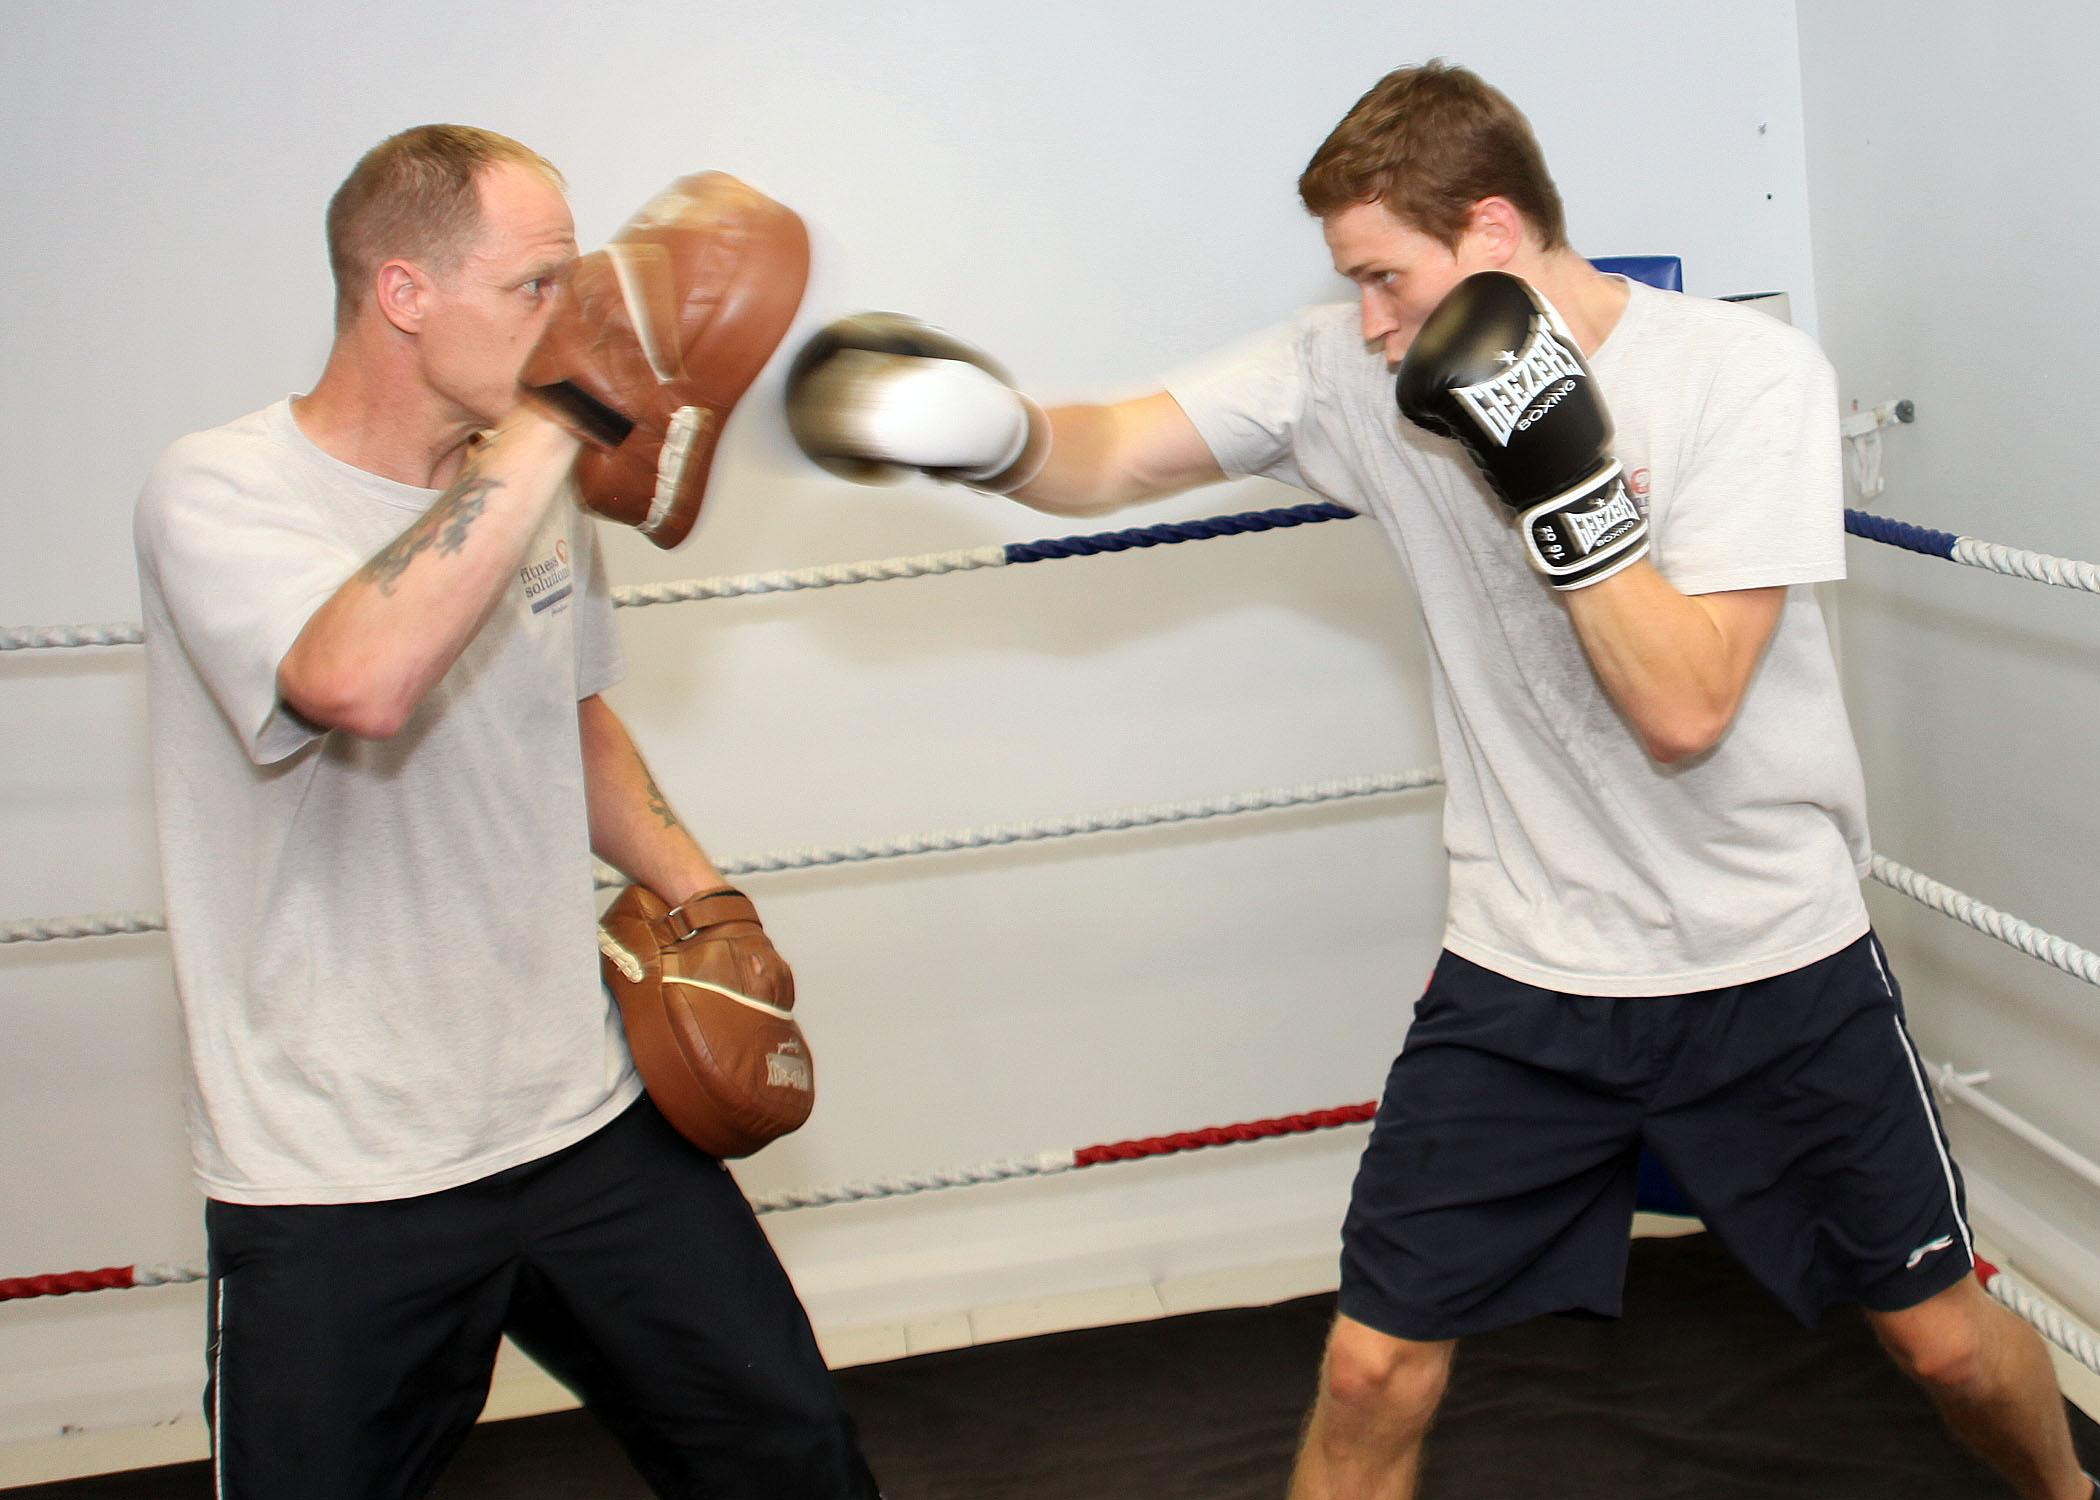 Trainer with trainee boxing